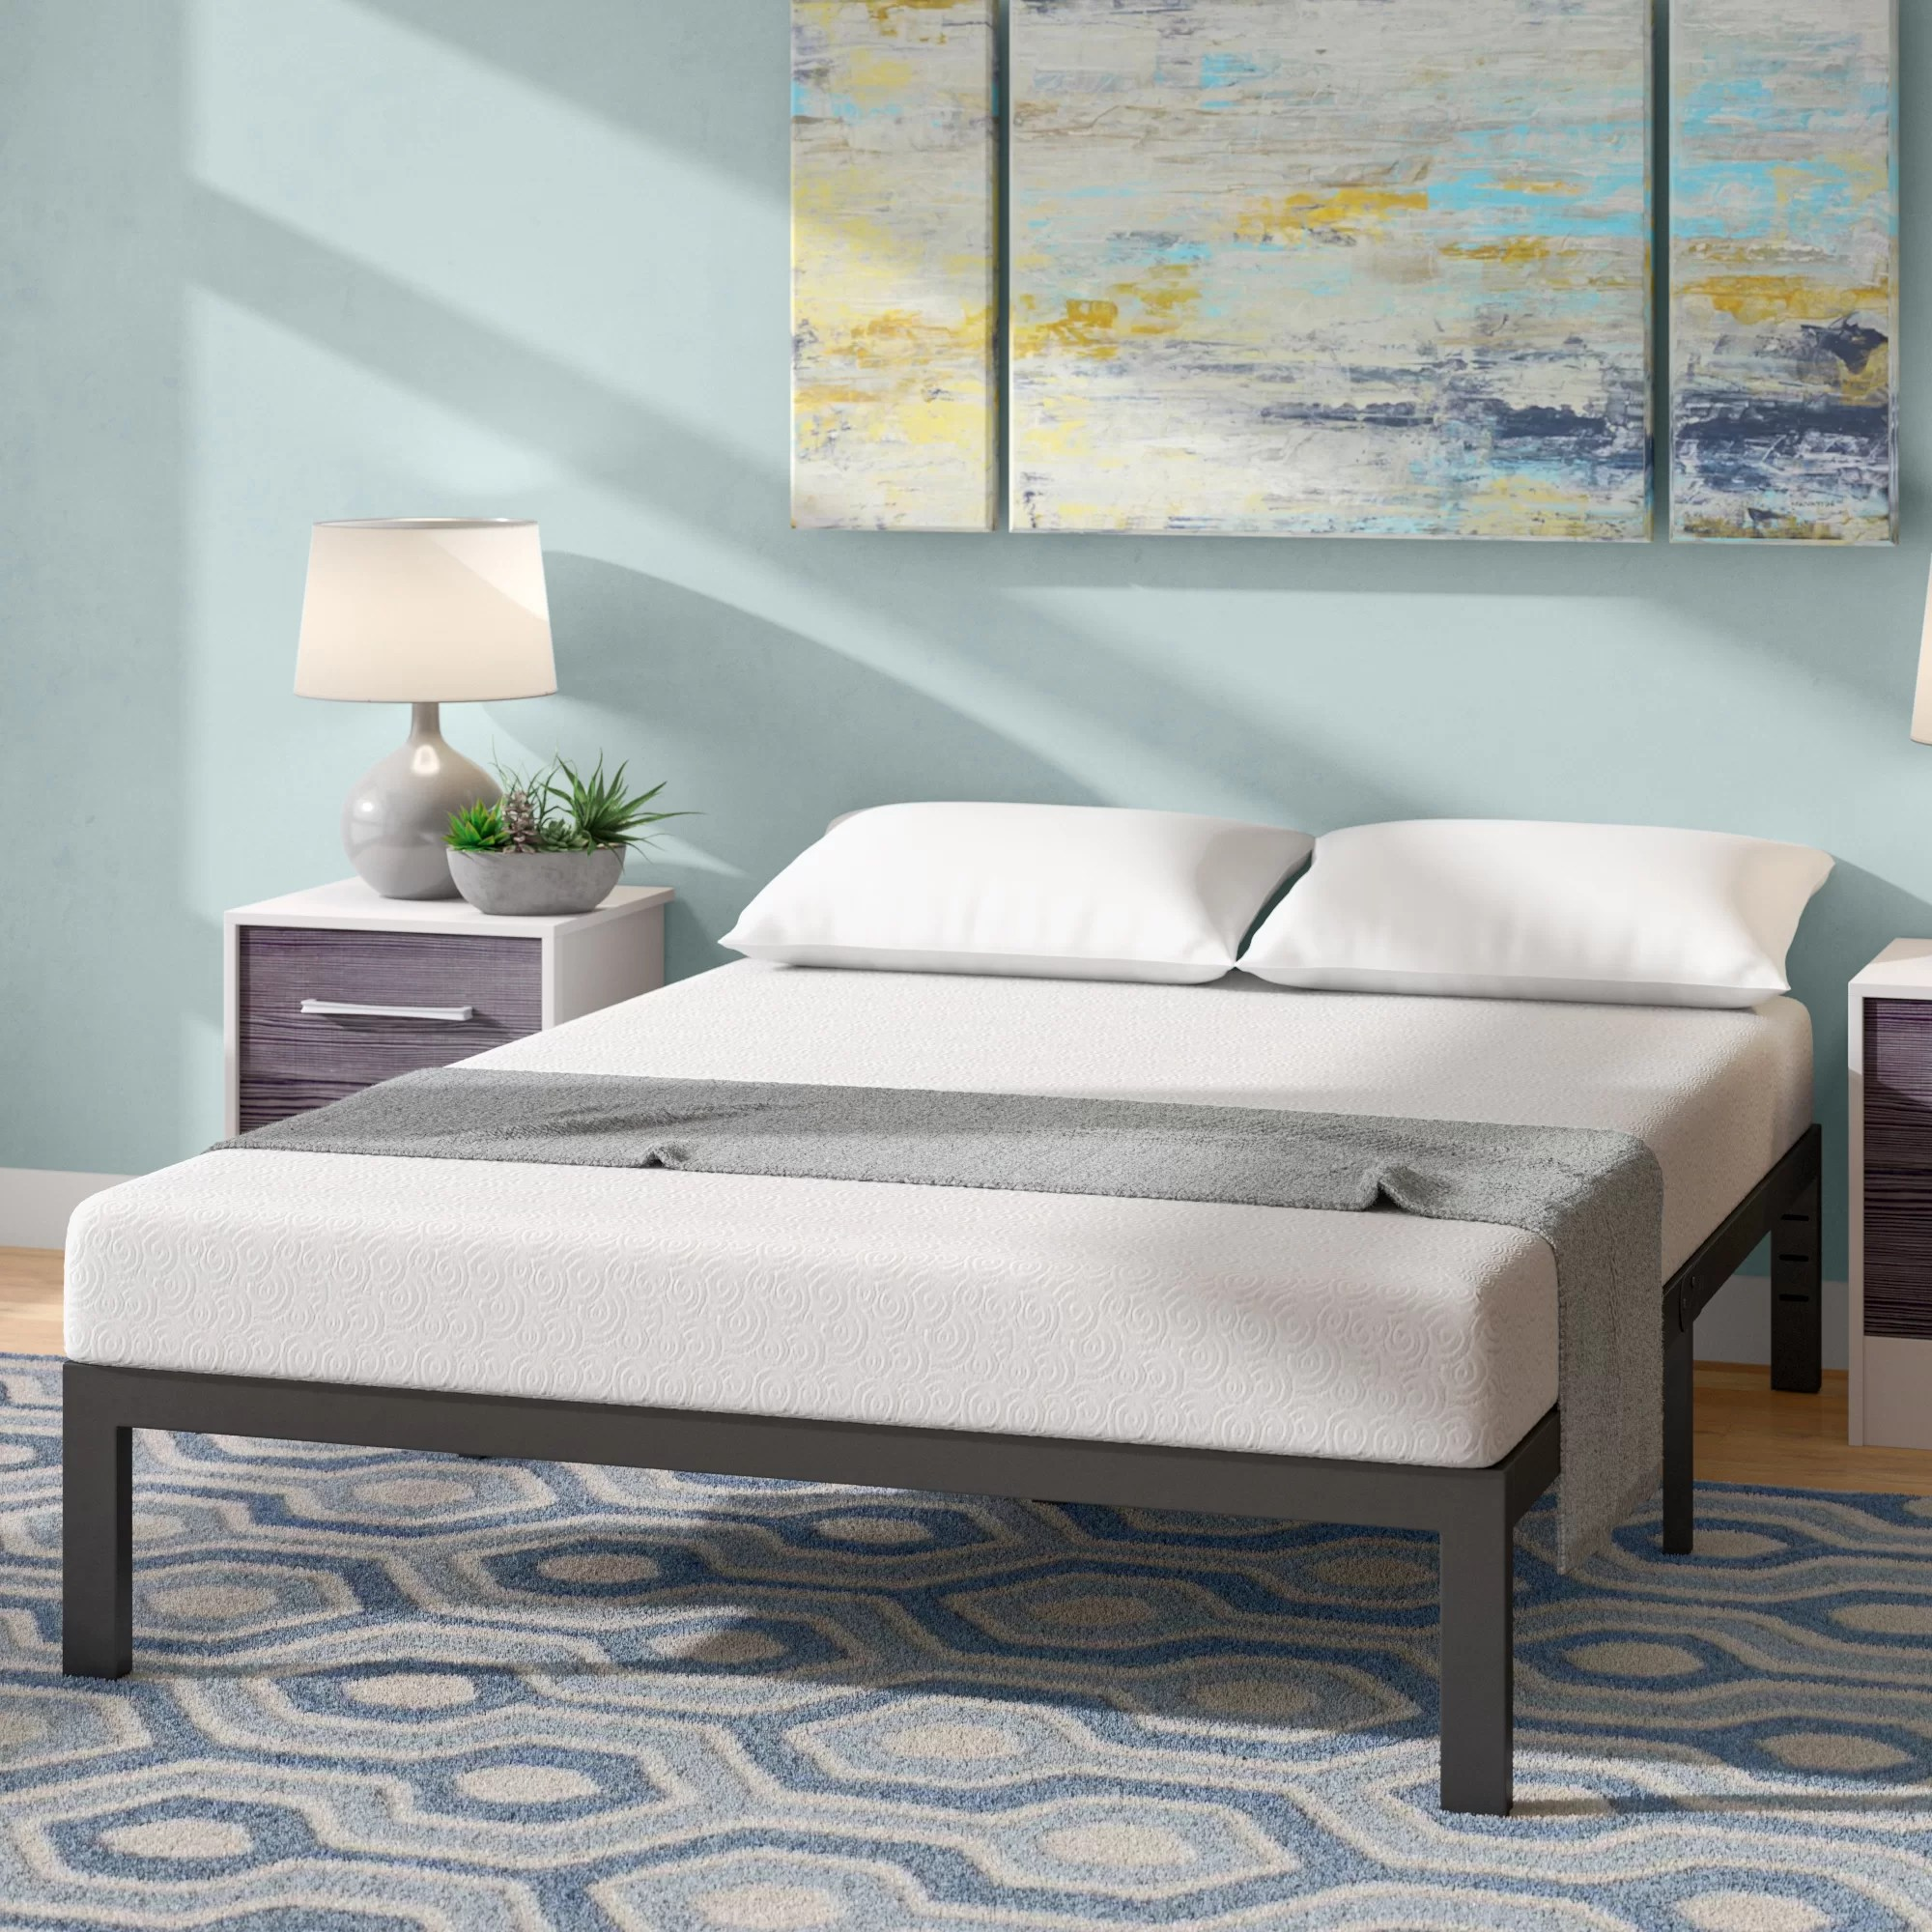 Beds Memory Foam Mattress 7